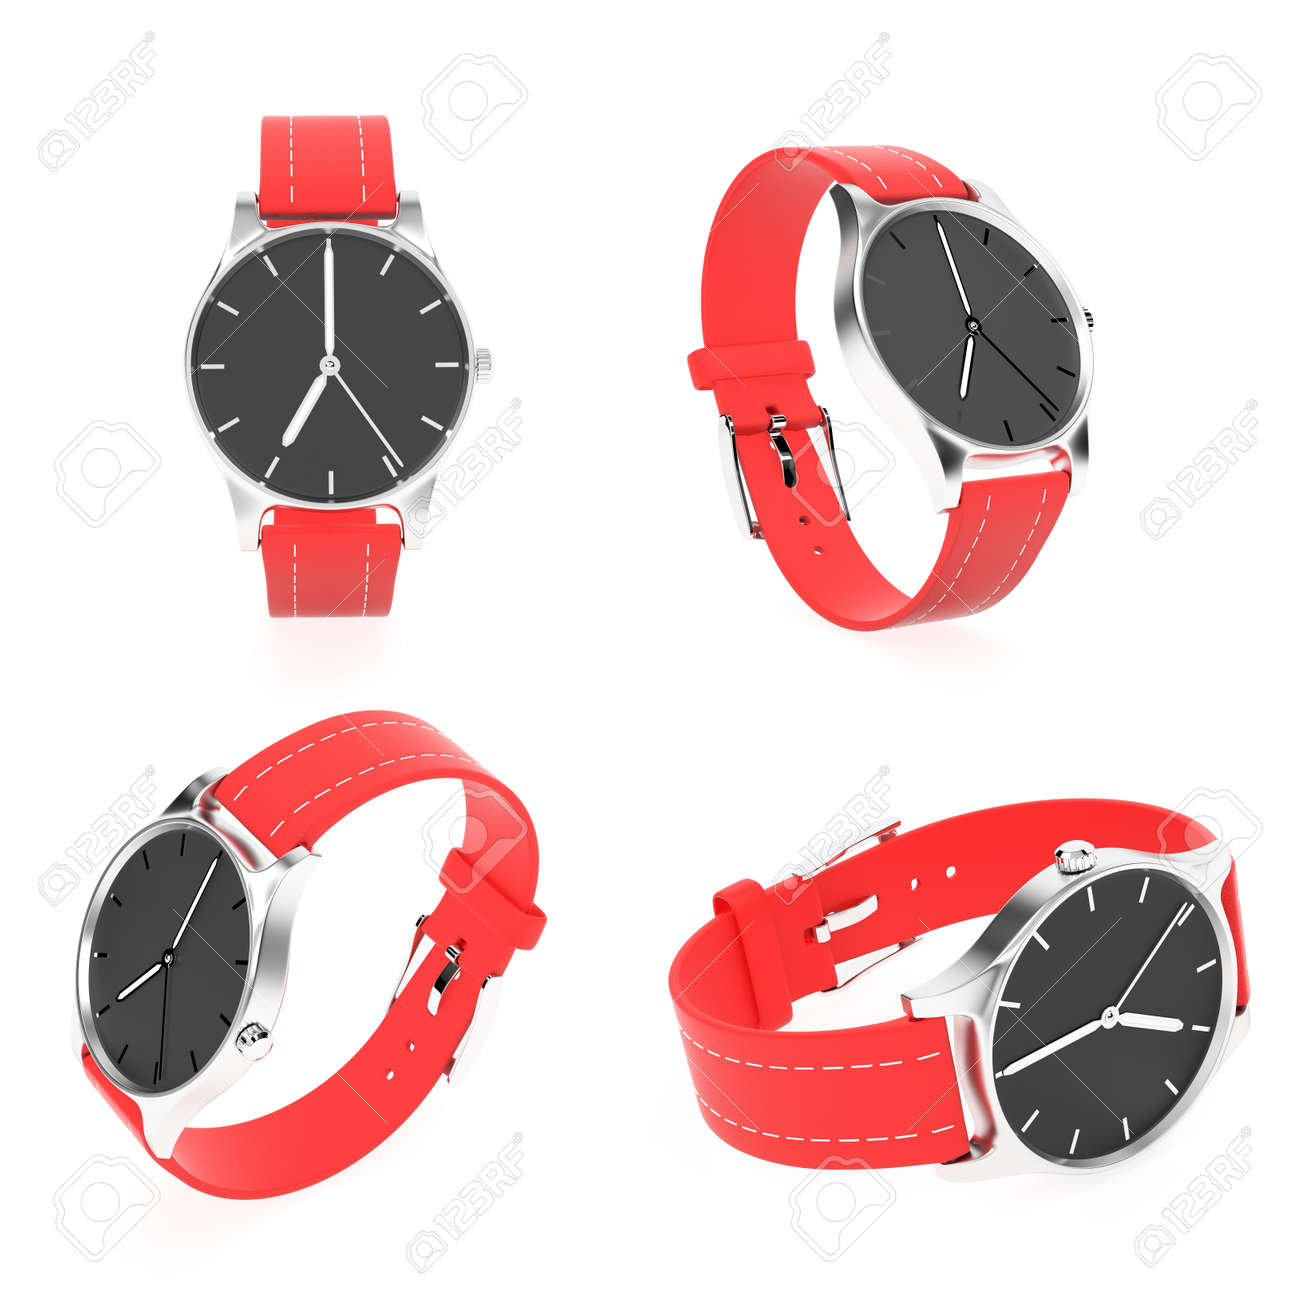 Wrist watch set. Black dial with steel case and red leather bracelet. 3d rendering illustration isolated on white background - 150191809